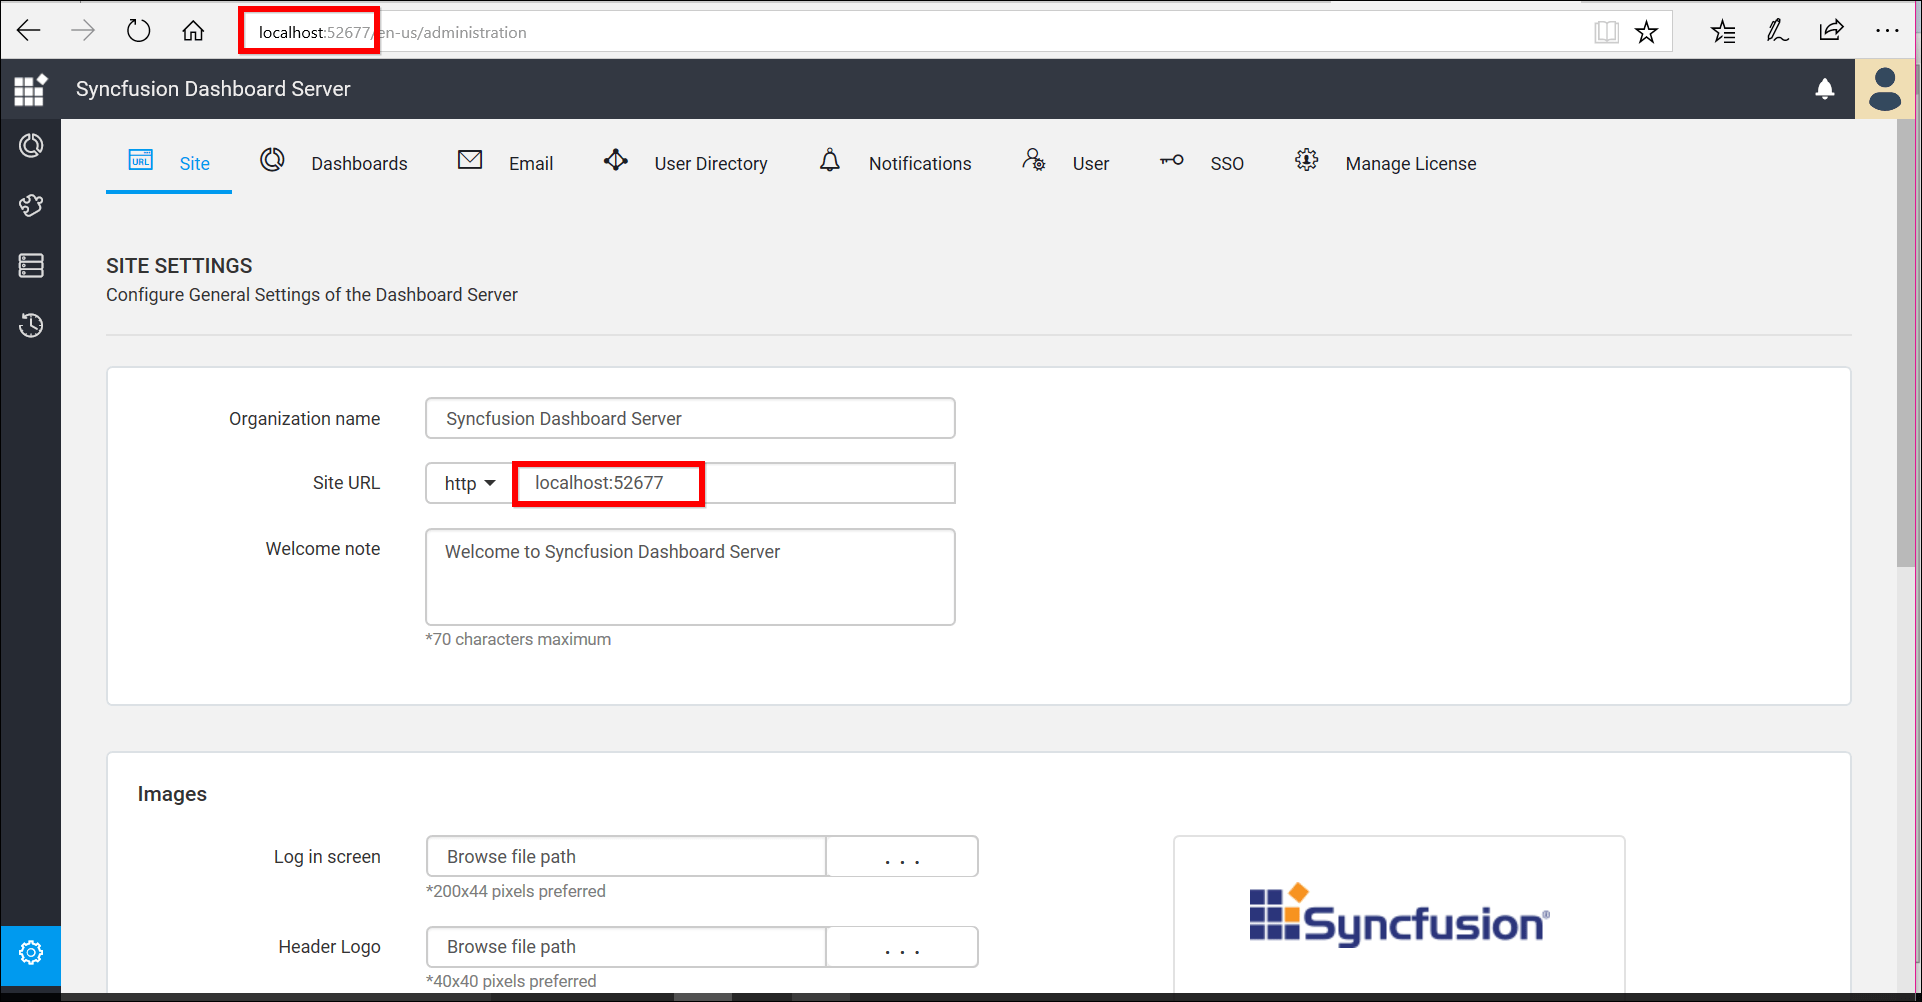 Upgrade Syncfusion Dashboard Server from any version to 3.2.